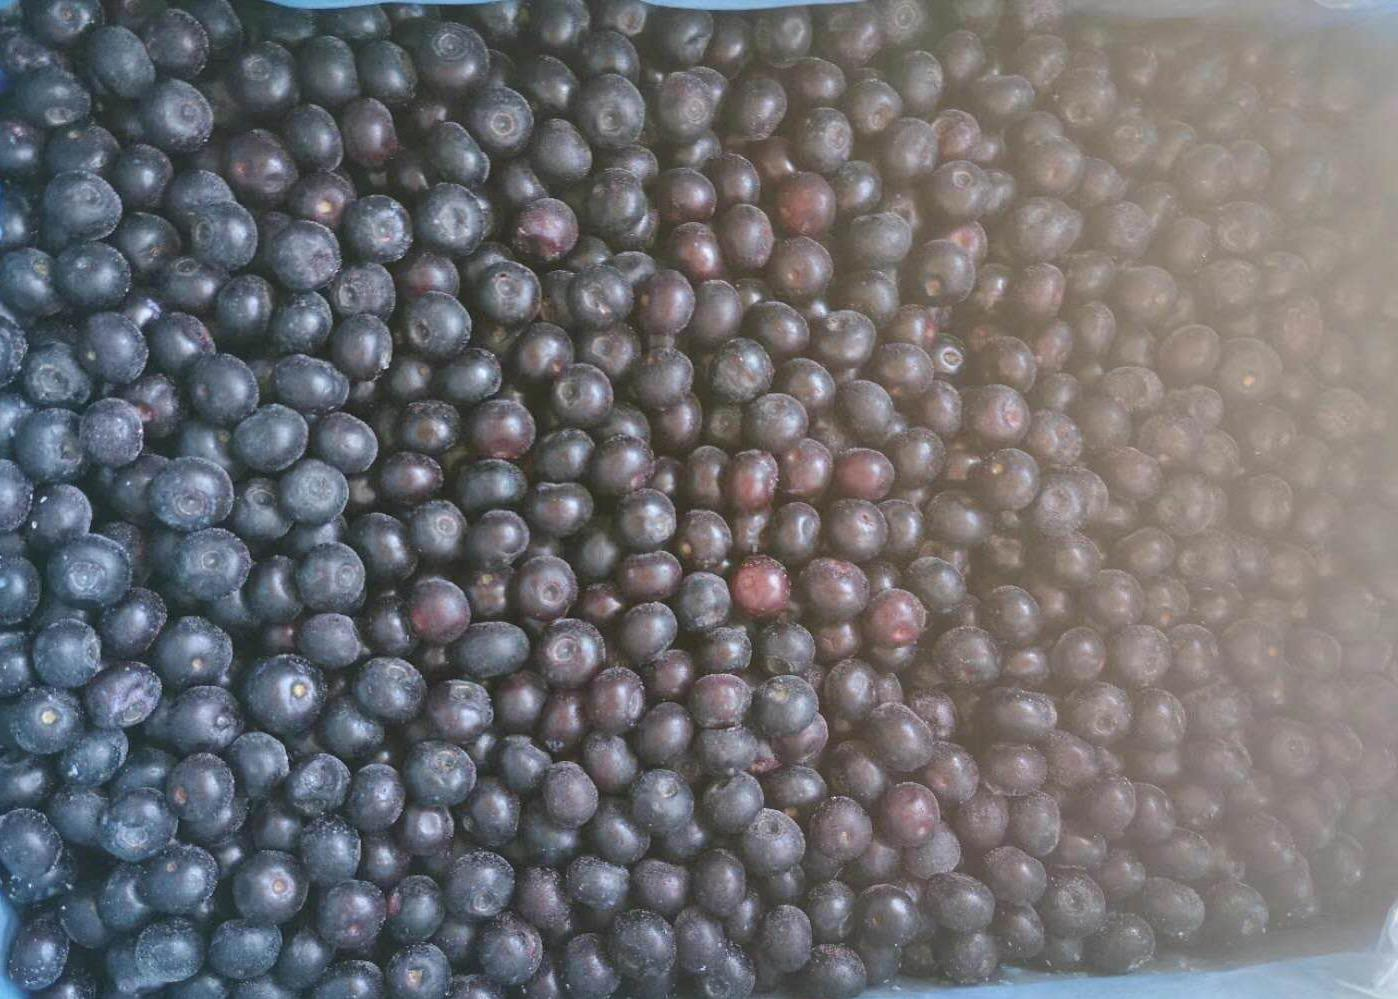 IQF blueberry,IQF Blueberries,Frozen Blueberries,cultivated